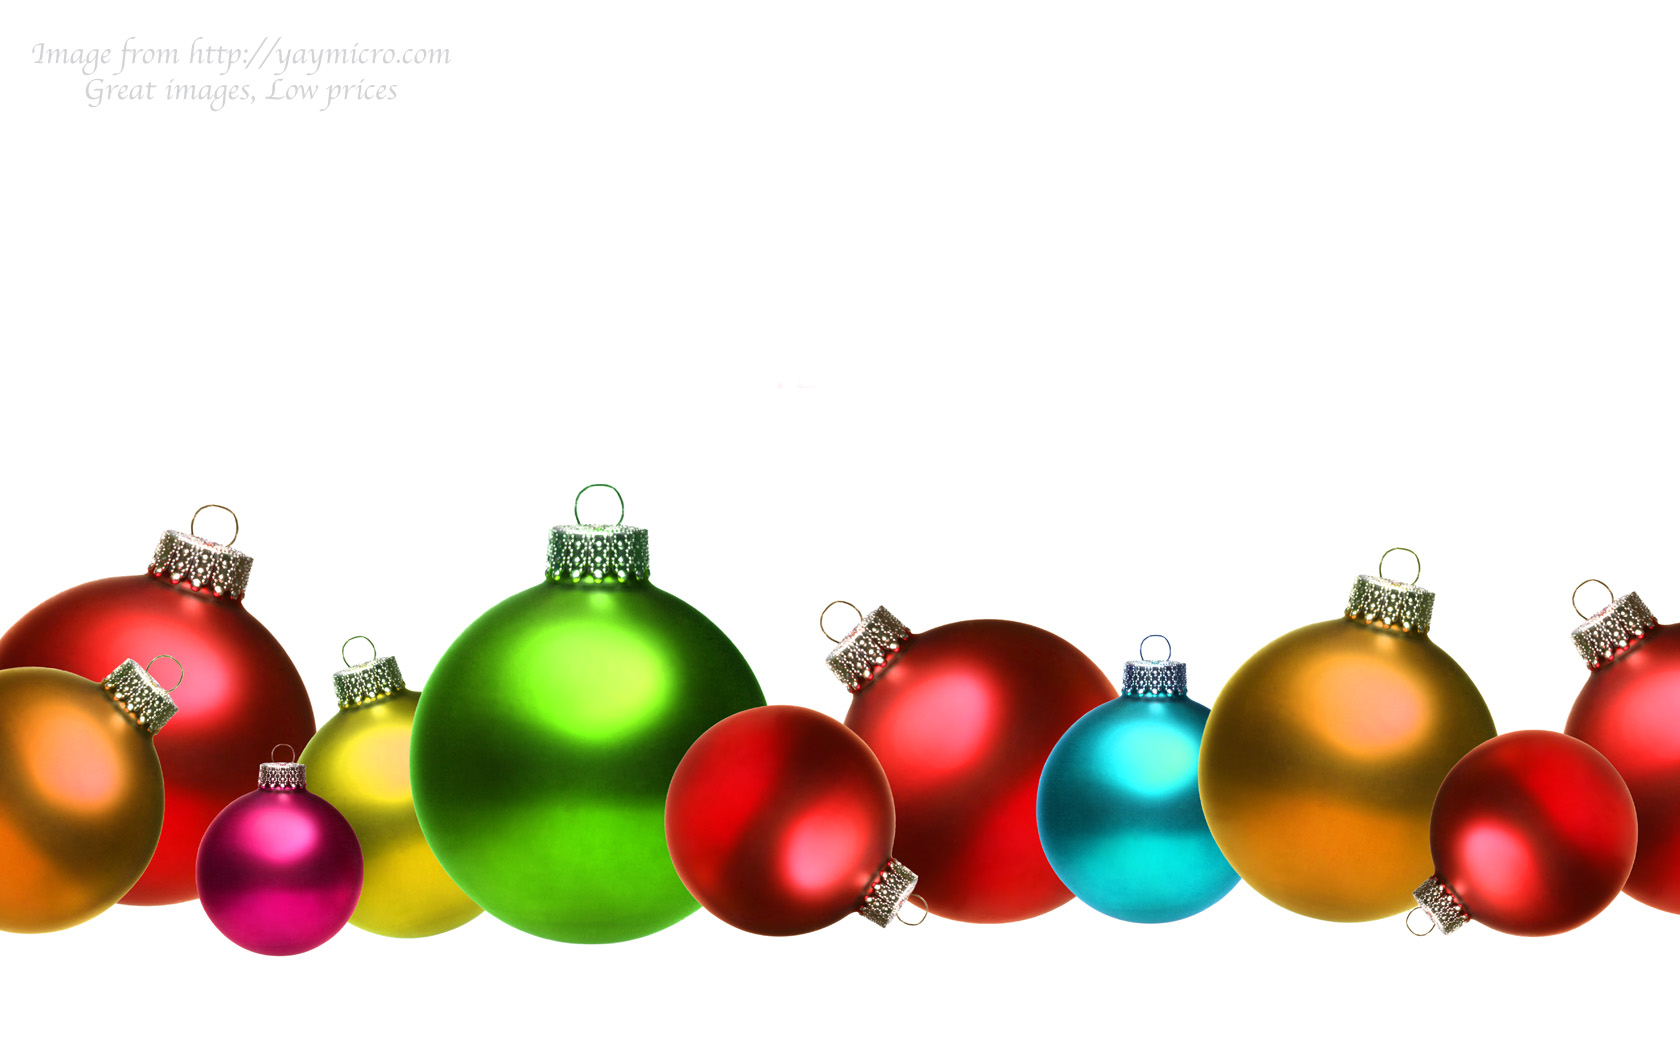 Christmas Bulbs Clipart & Christmas Bulbs Clip Art Images.